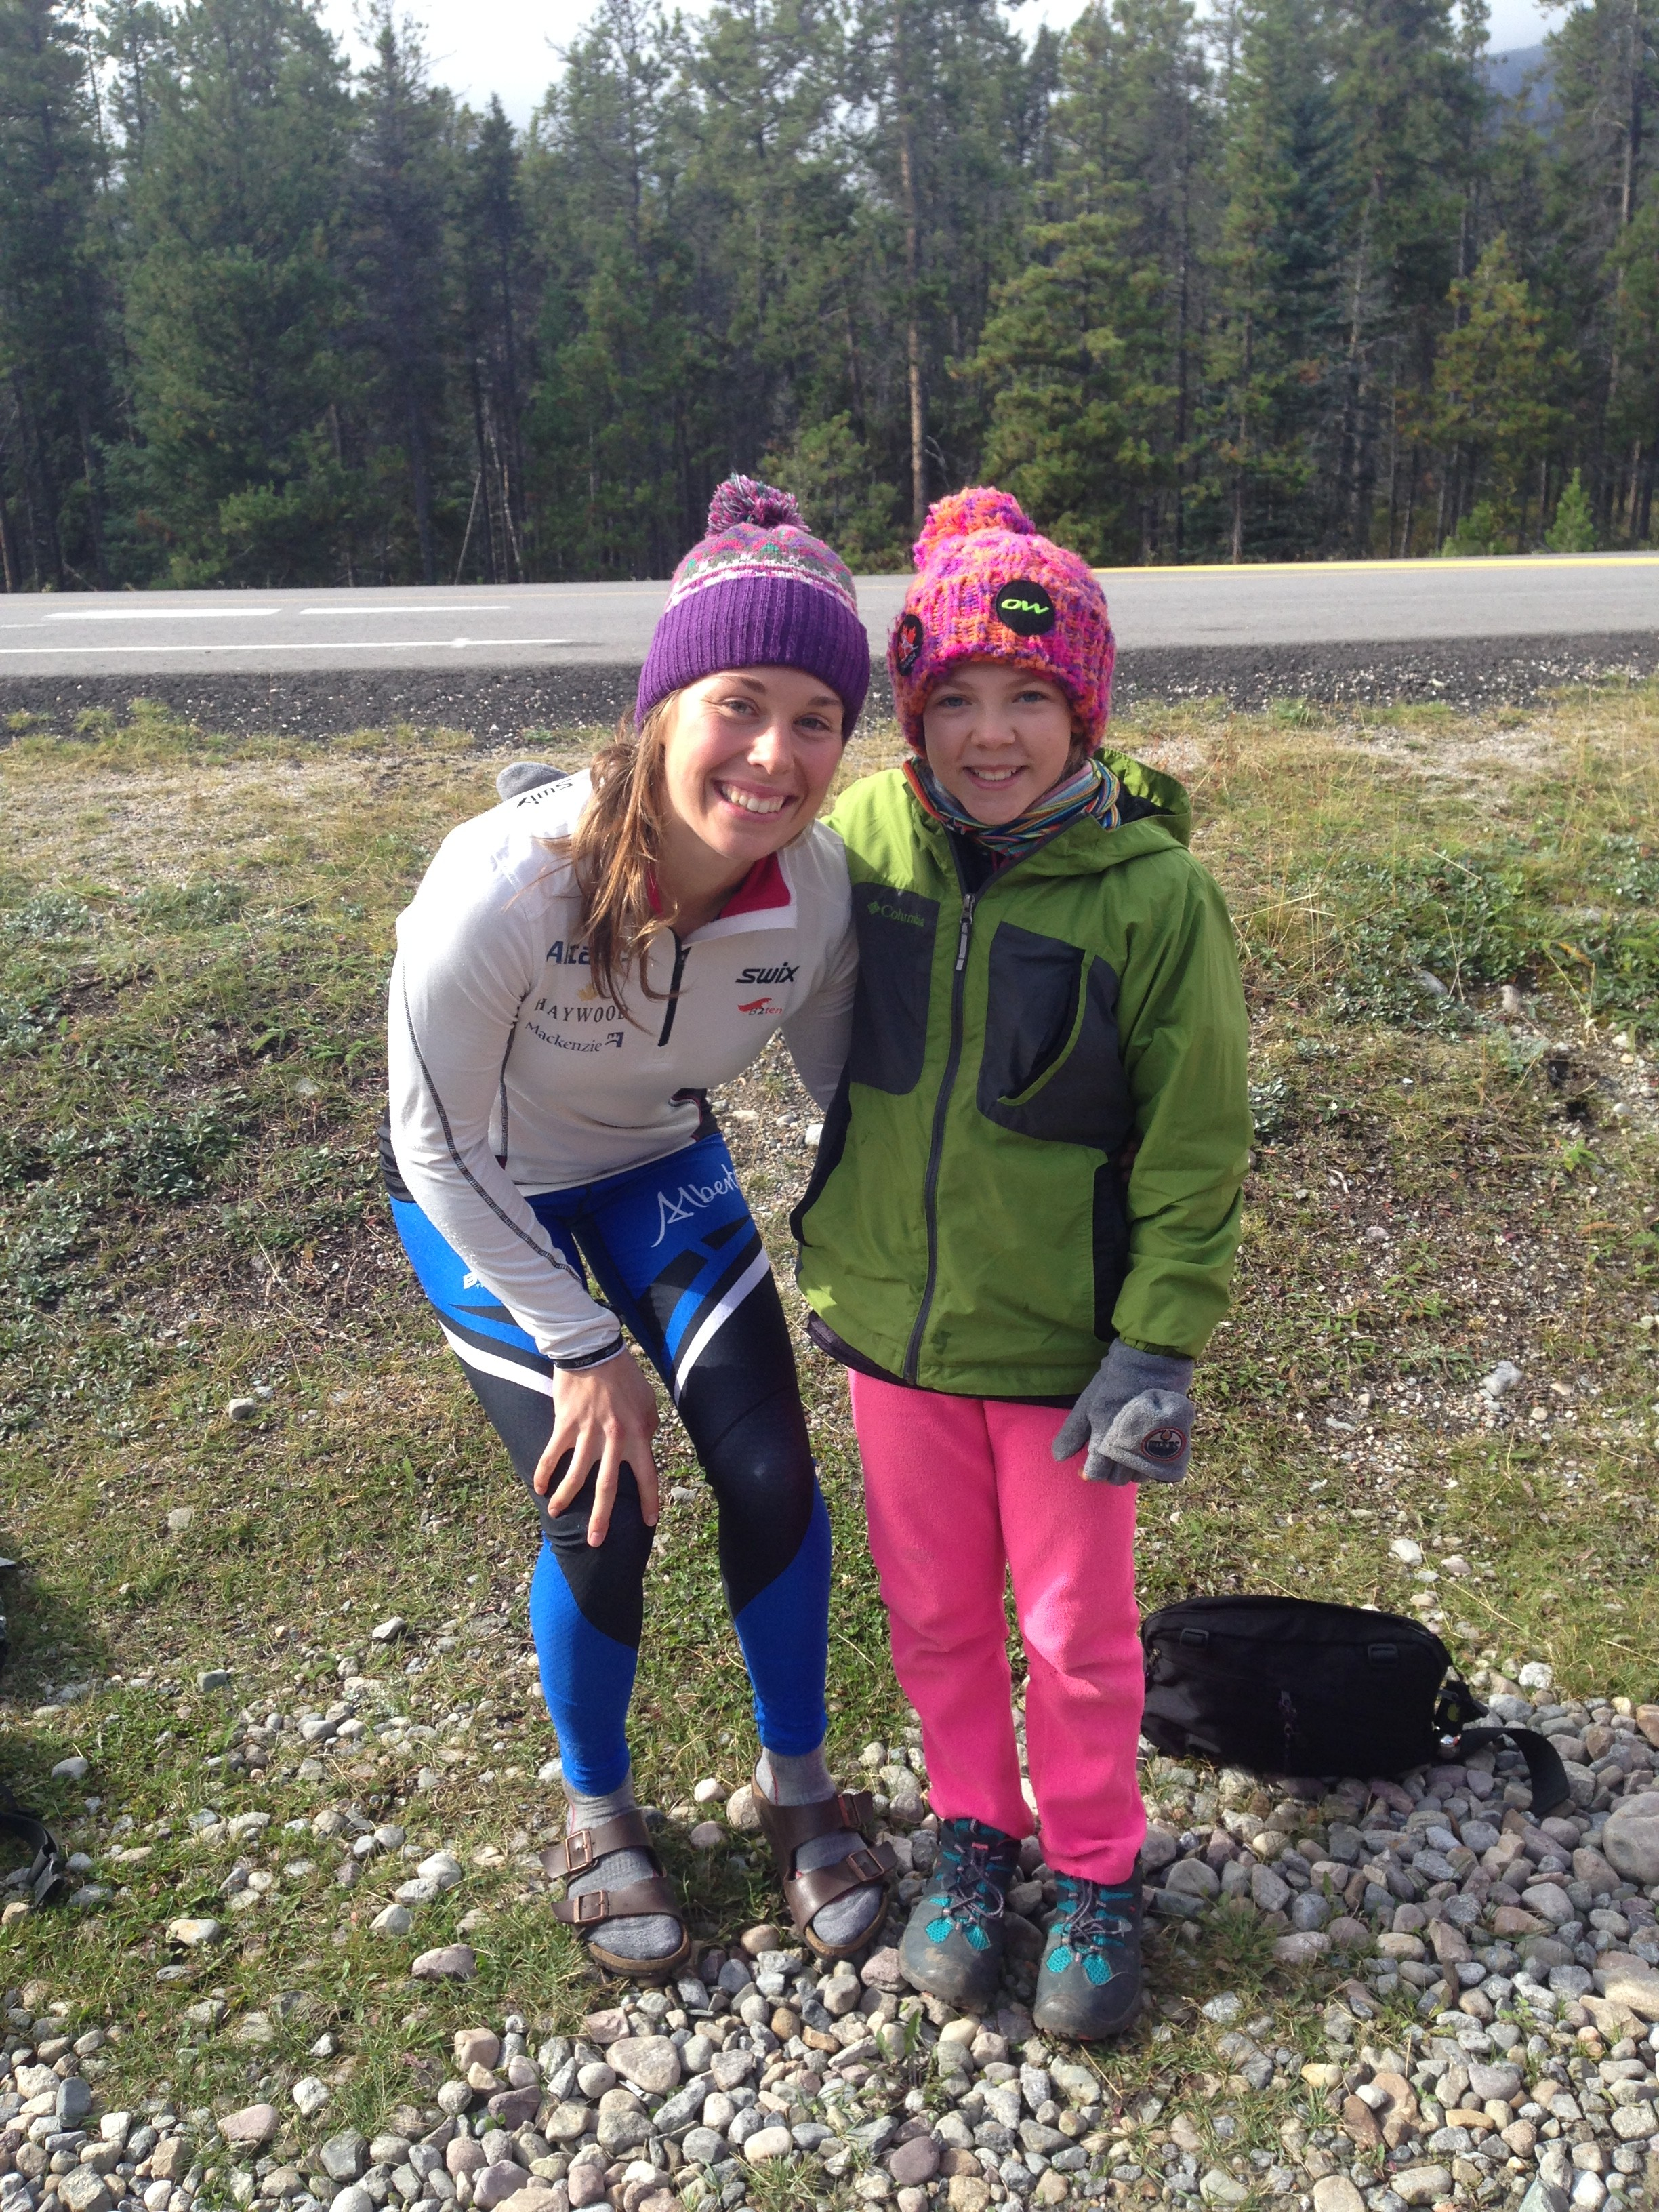 https://fasterskier.com/wp-content/blogs.dir/1/files/2016/10/Coaching-at-a-Cross-Country-Alberta-Camp-e1476807894712.jpg